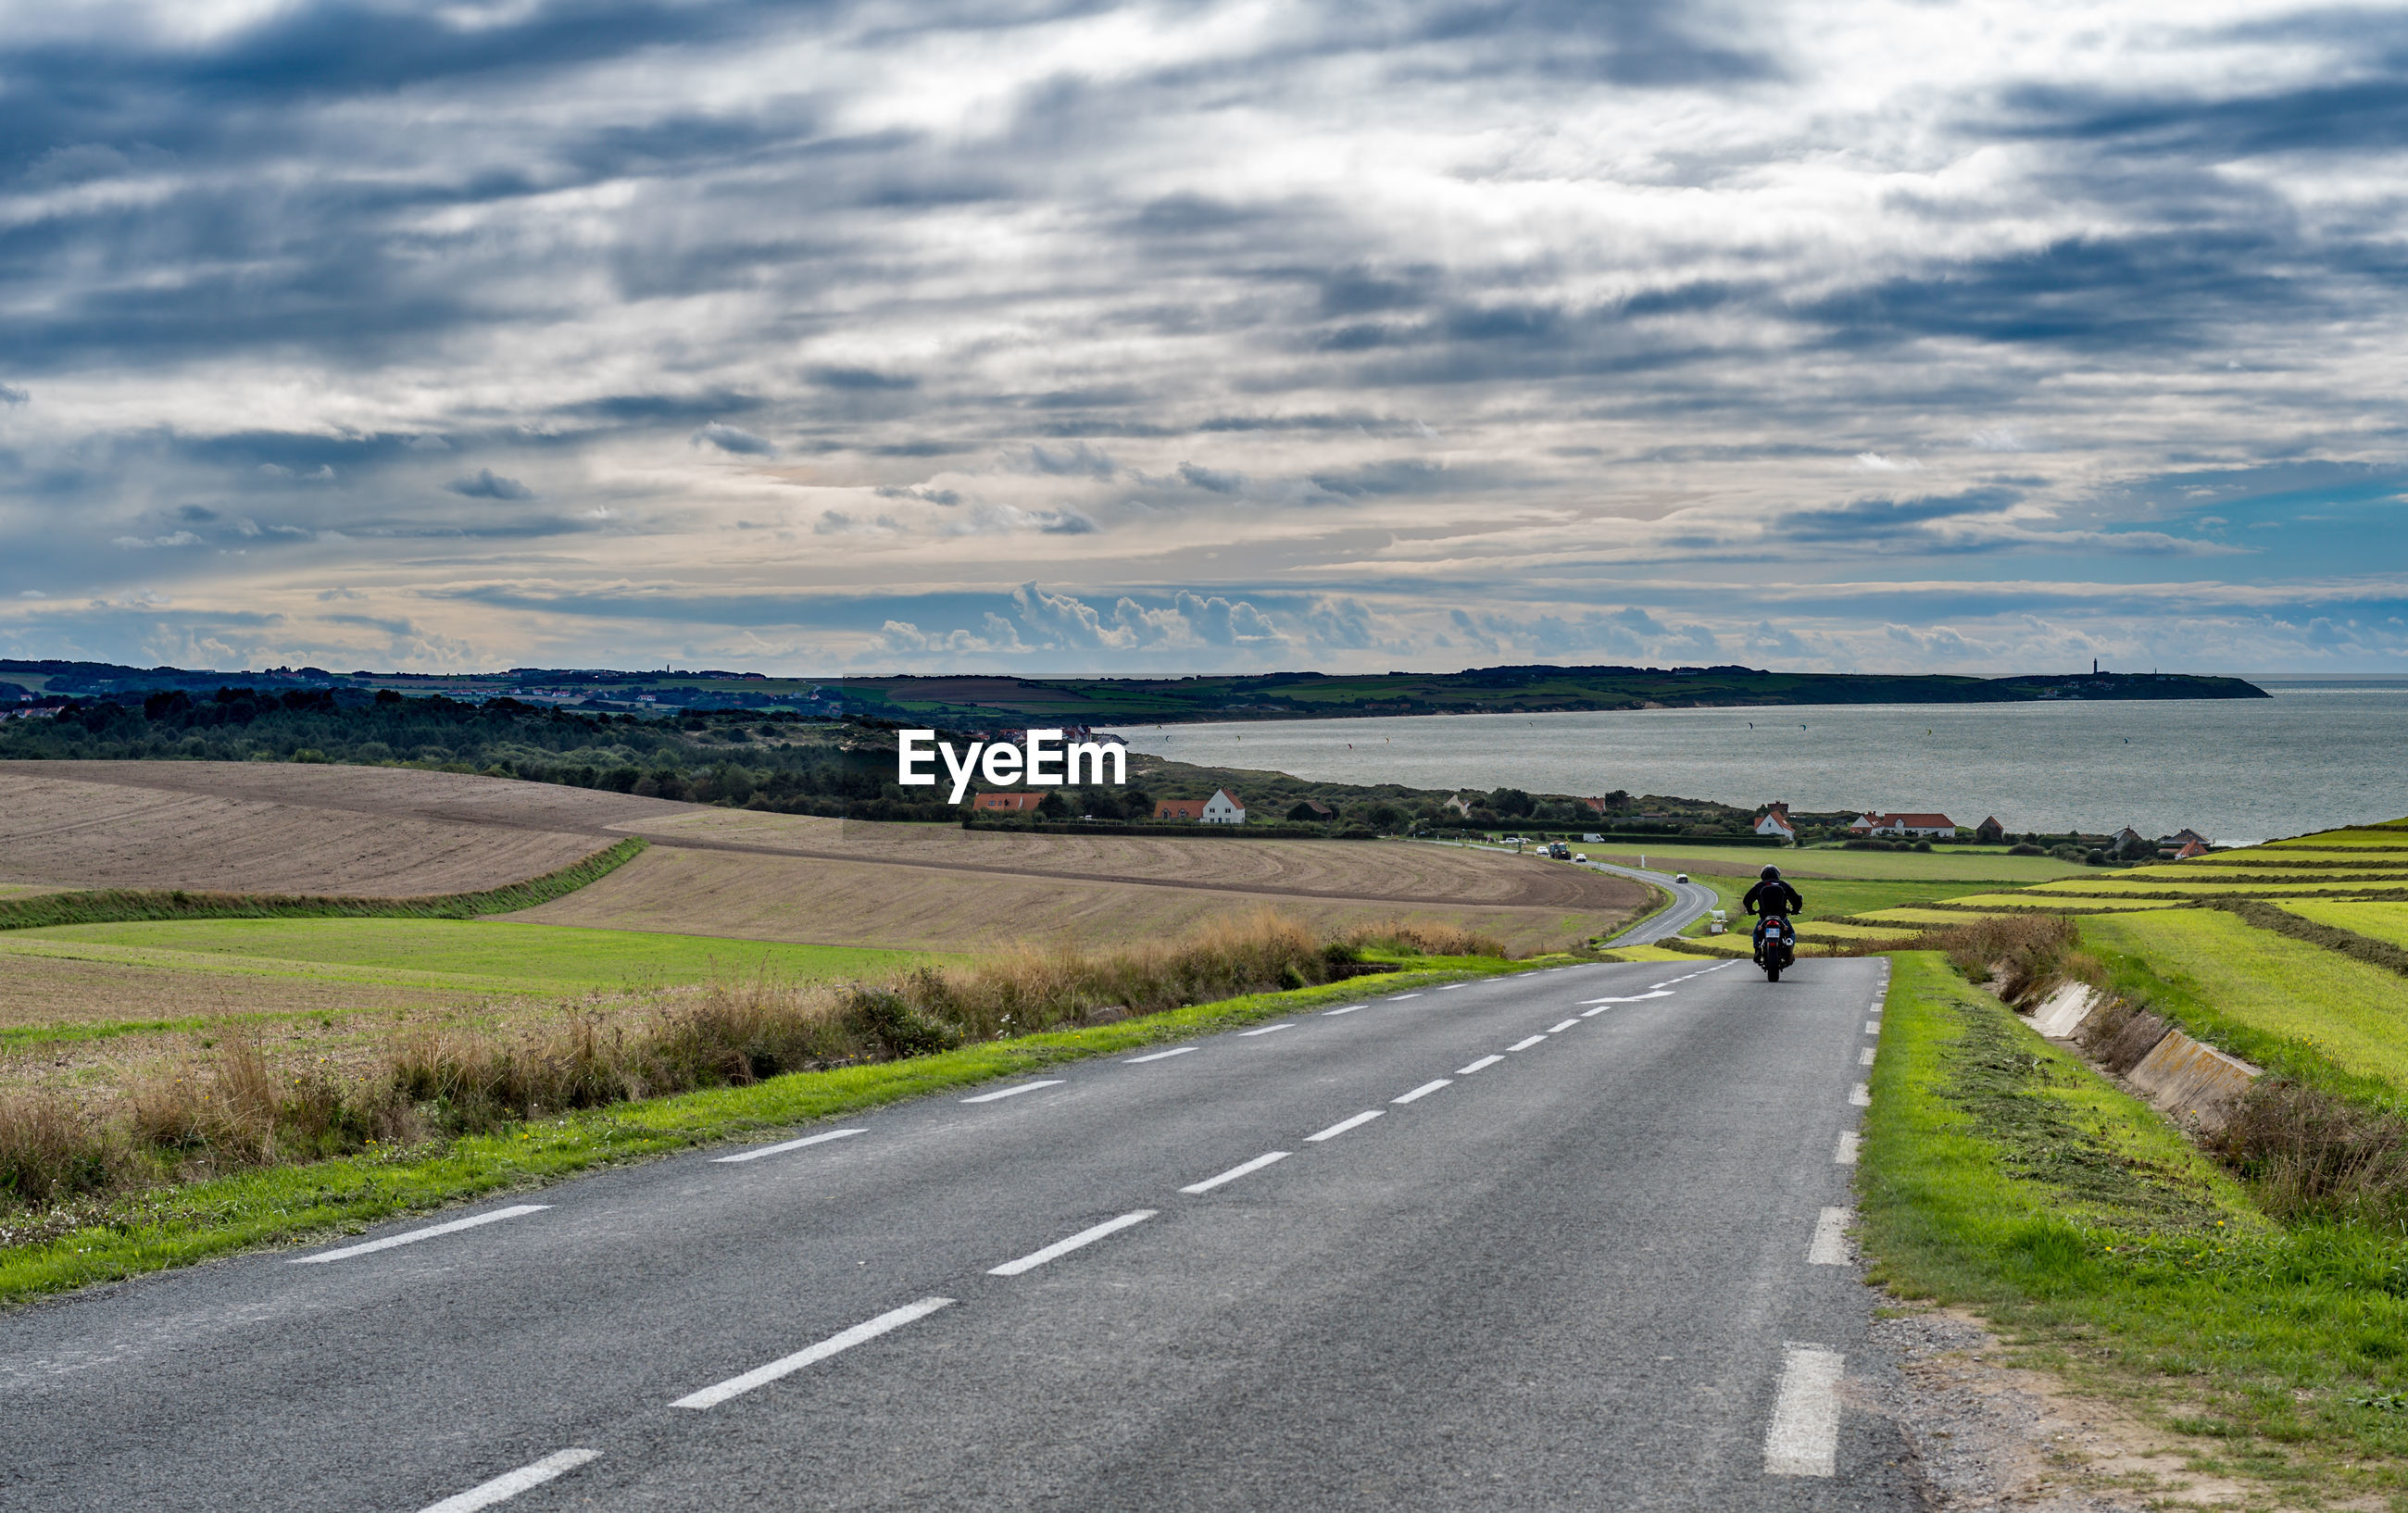 Man riding motorcycle on country road against cloudy sky